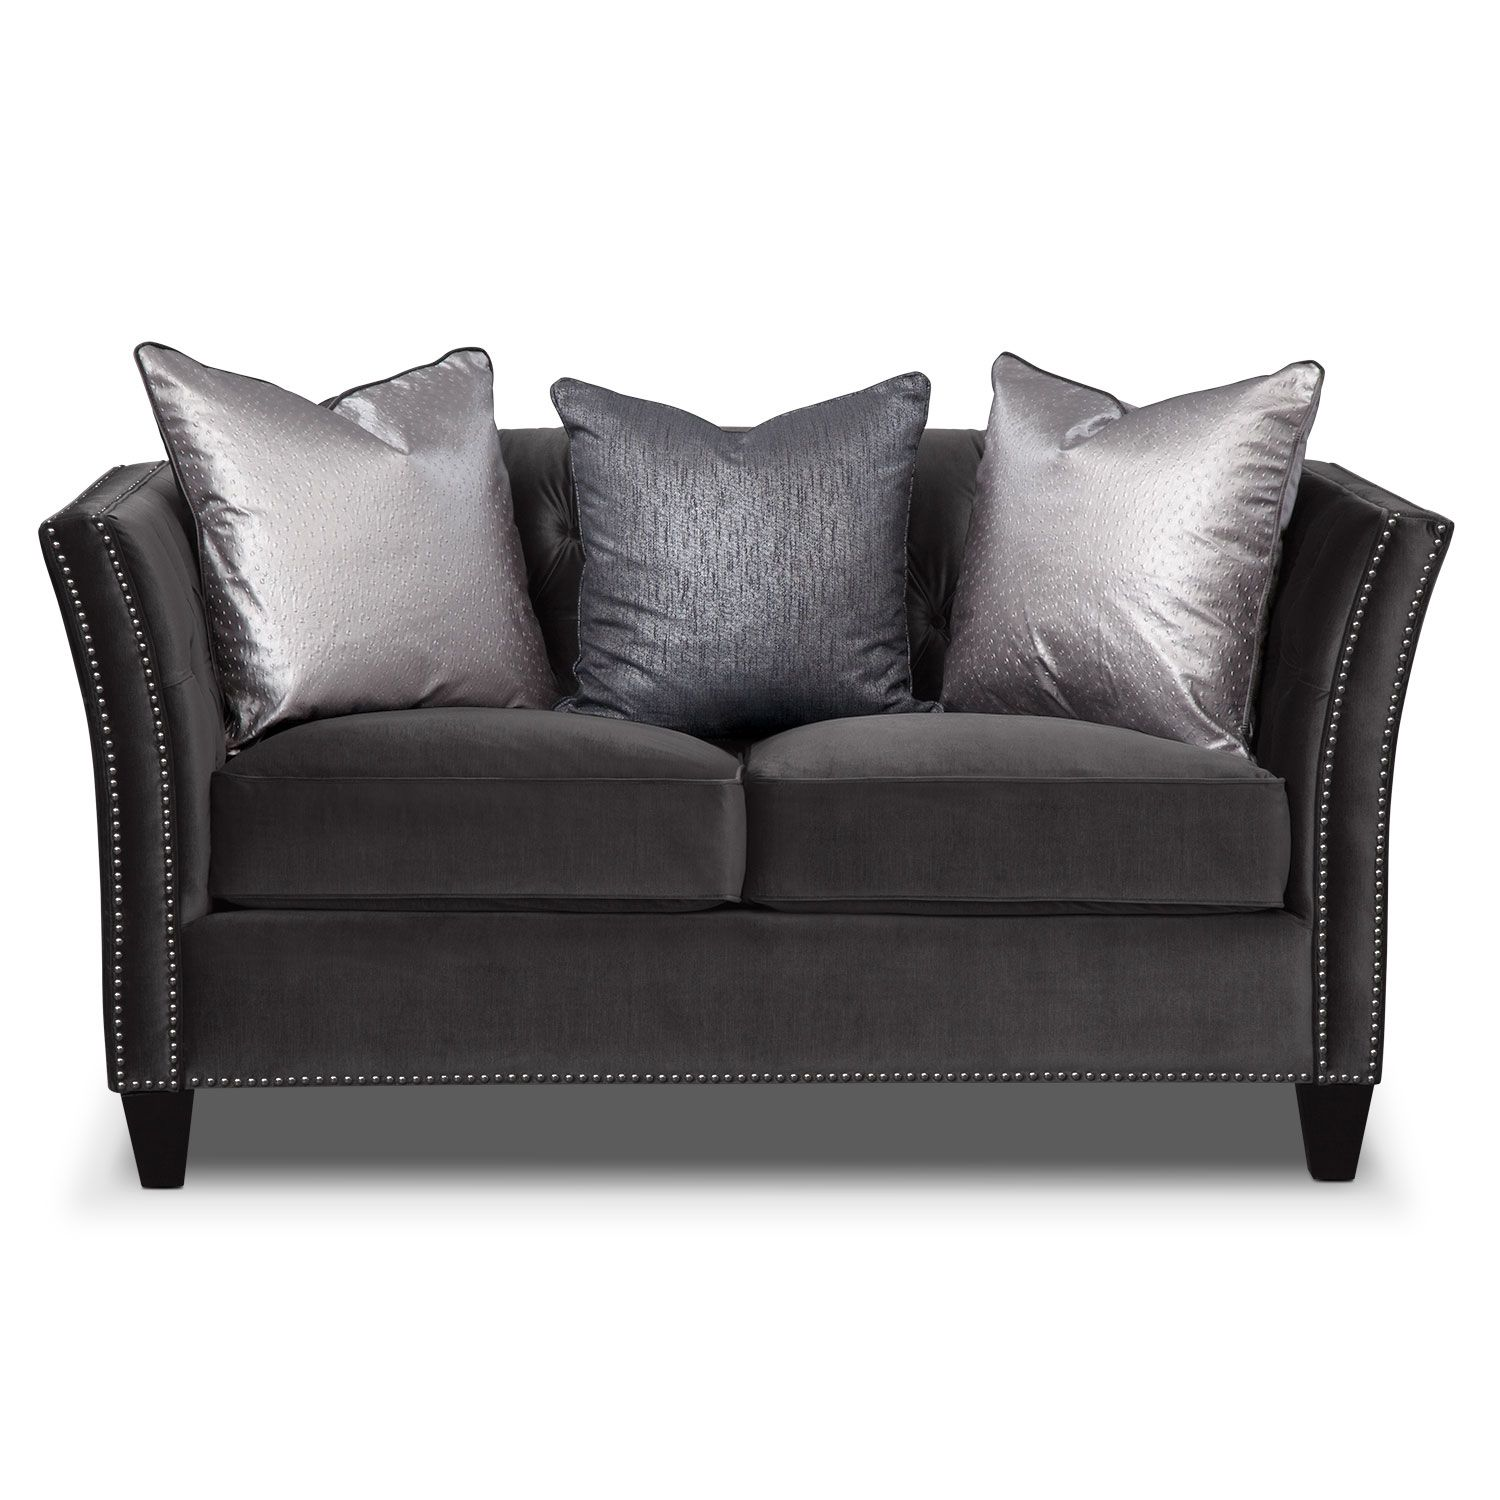 Brilliant Nicole Charcoal Loveseat Value City Furniture Living Ocoug Best Dining Table And Chair Ideas Images Ocougorg